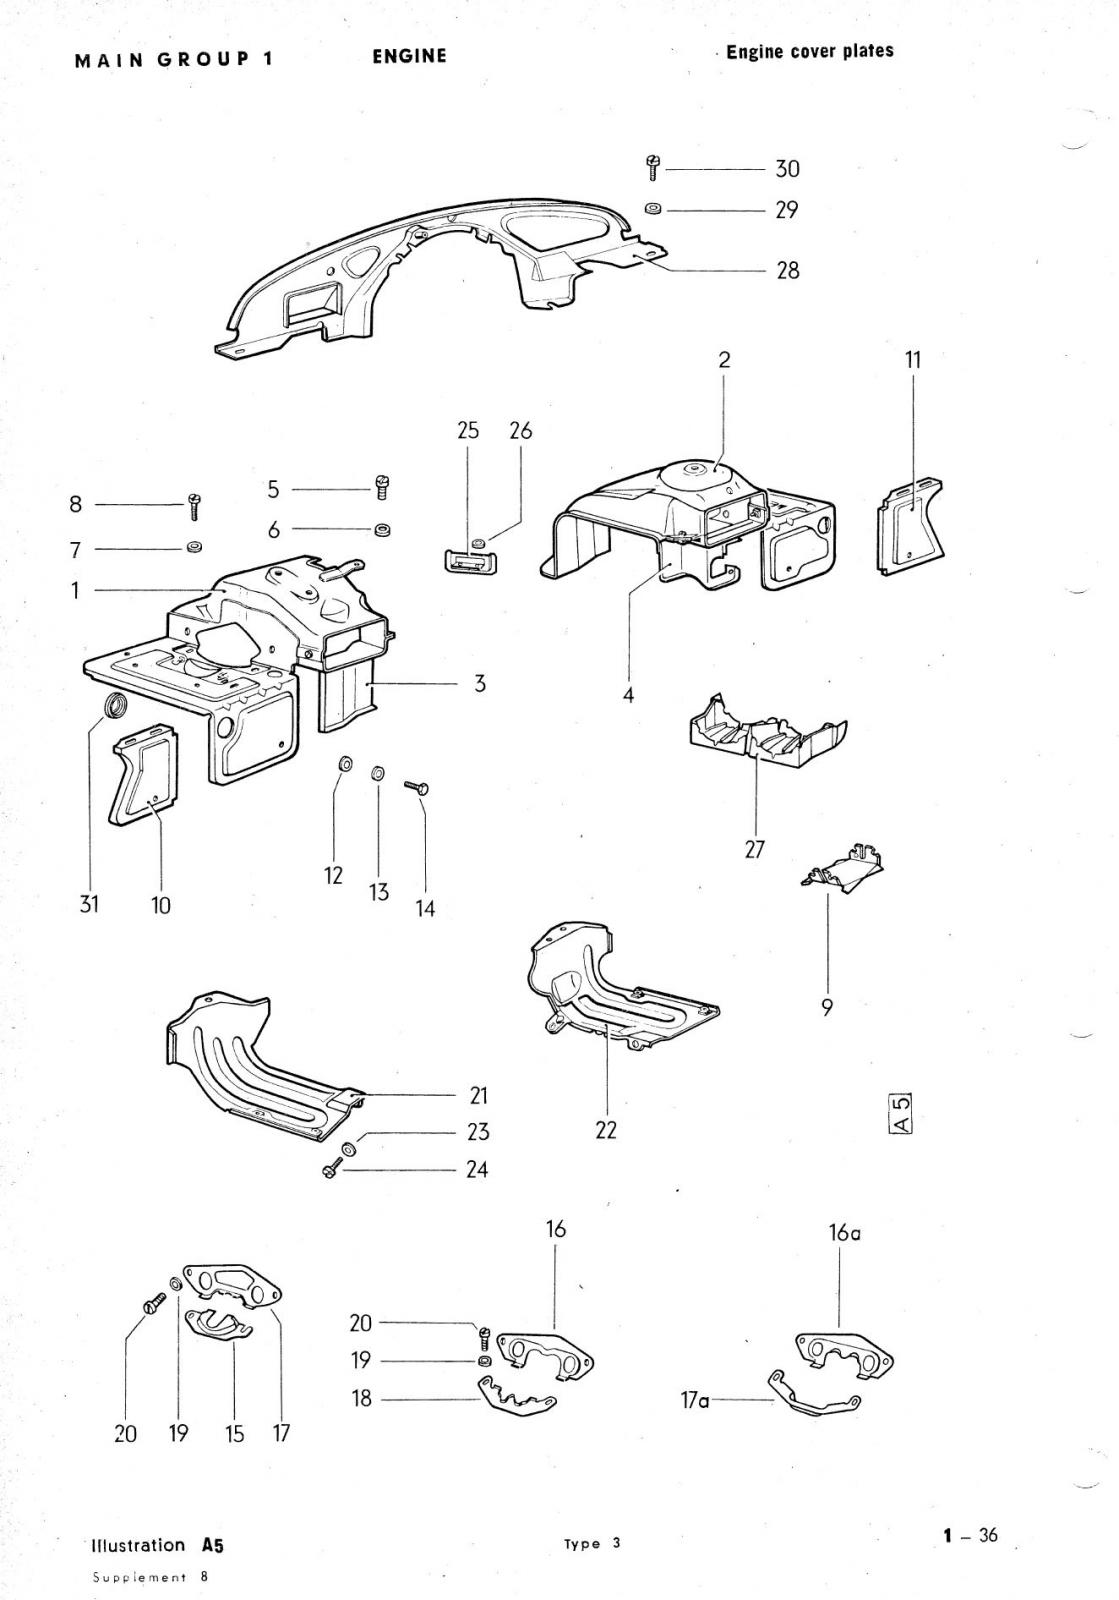 porsche 914 type iv engine diagram vw engine tin diagram wiring diagram data  vw engine tin diagram wiring diagram data